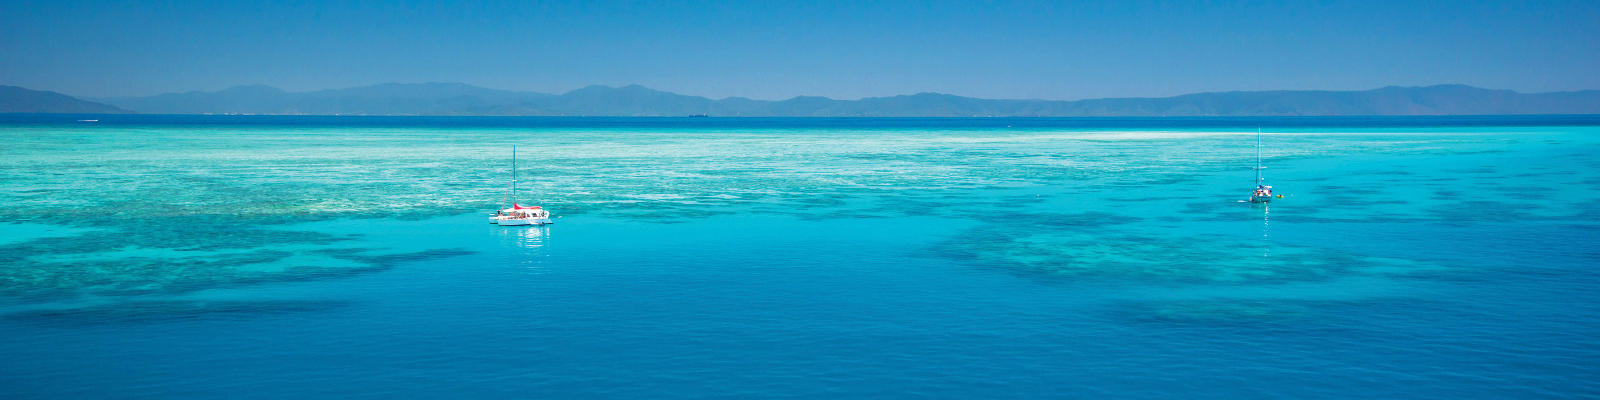 sailing boat on water on great barrier reef